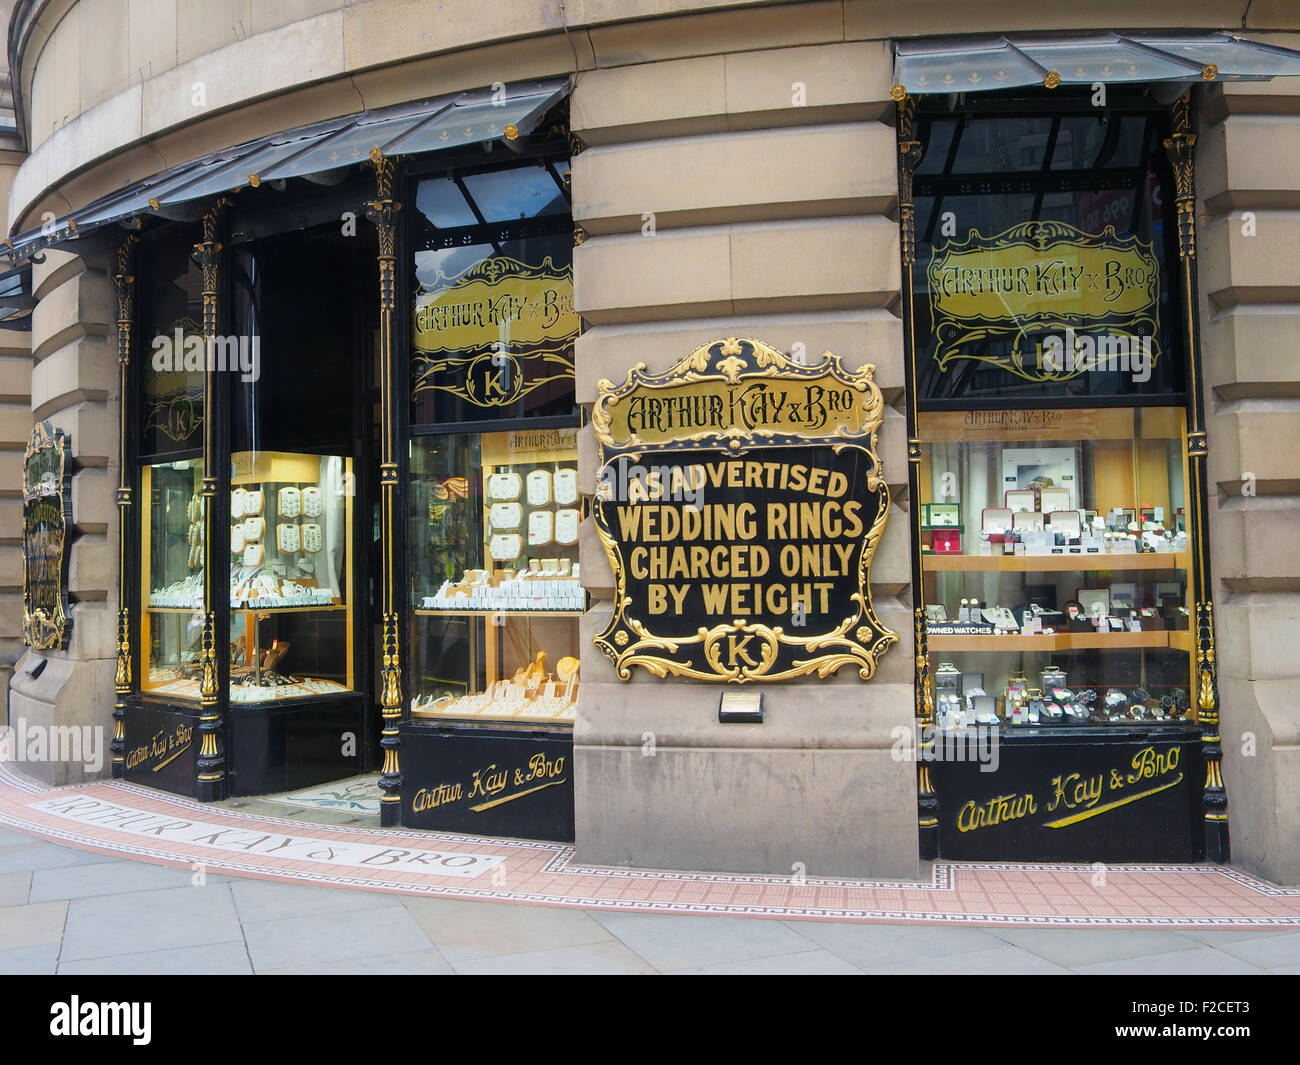 Shop window display of a jewellers specializing in gold in Manchester, city centre, UK. - Stock Image